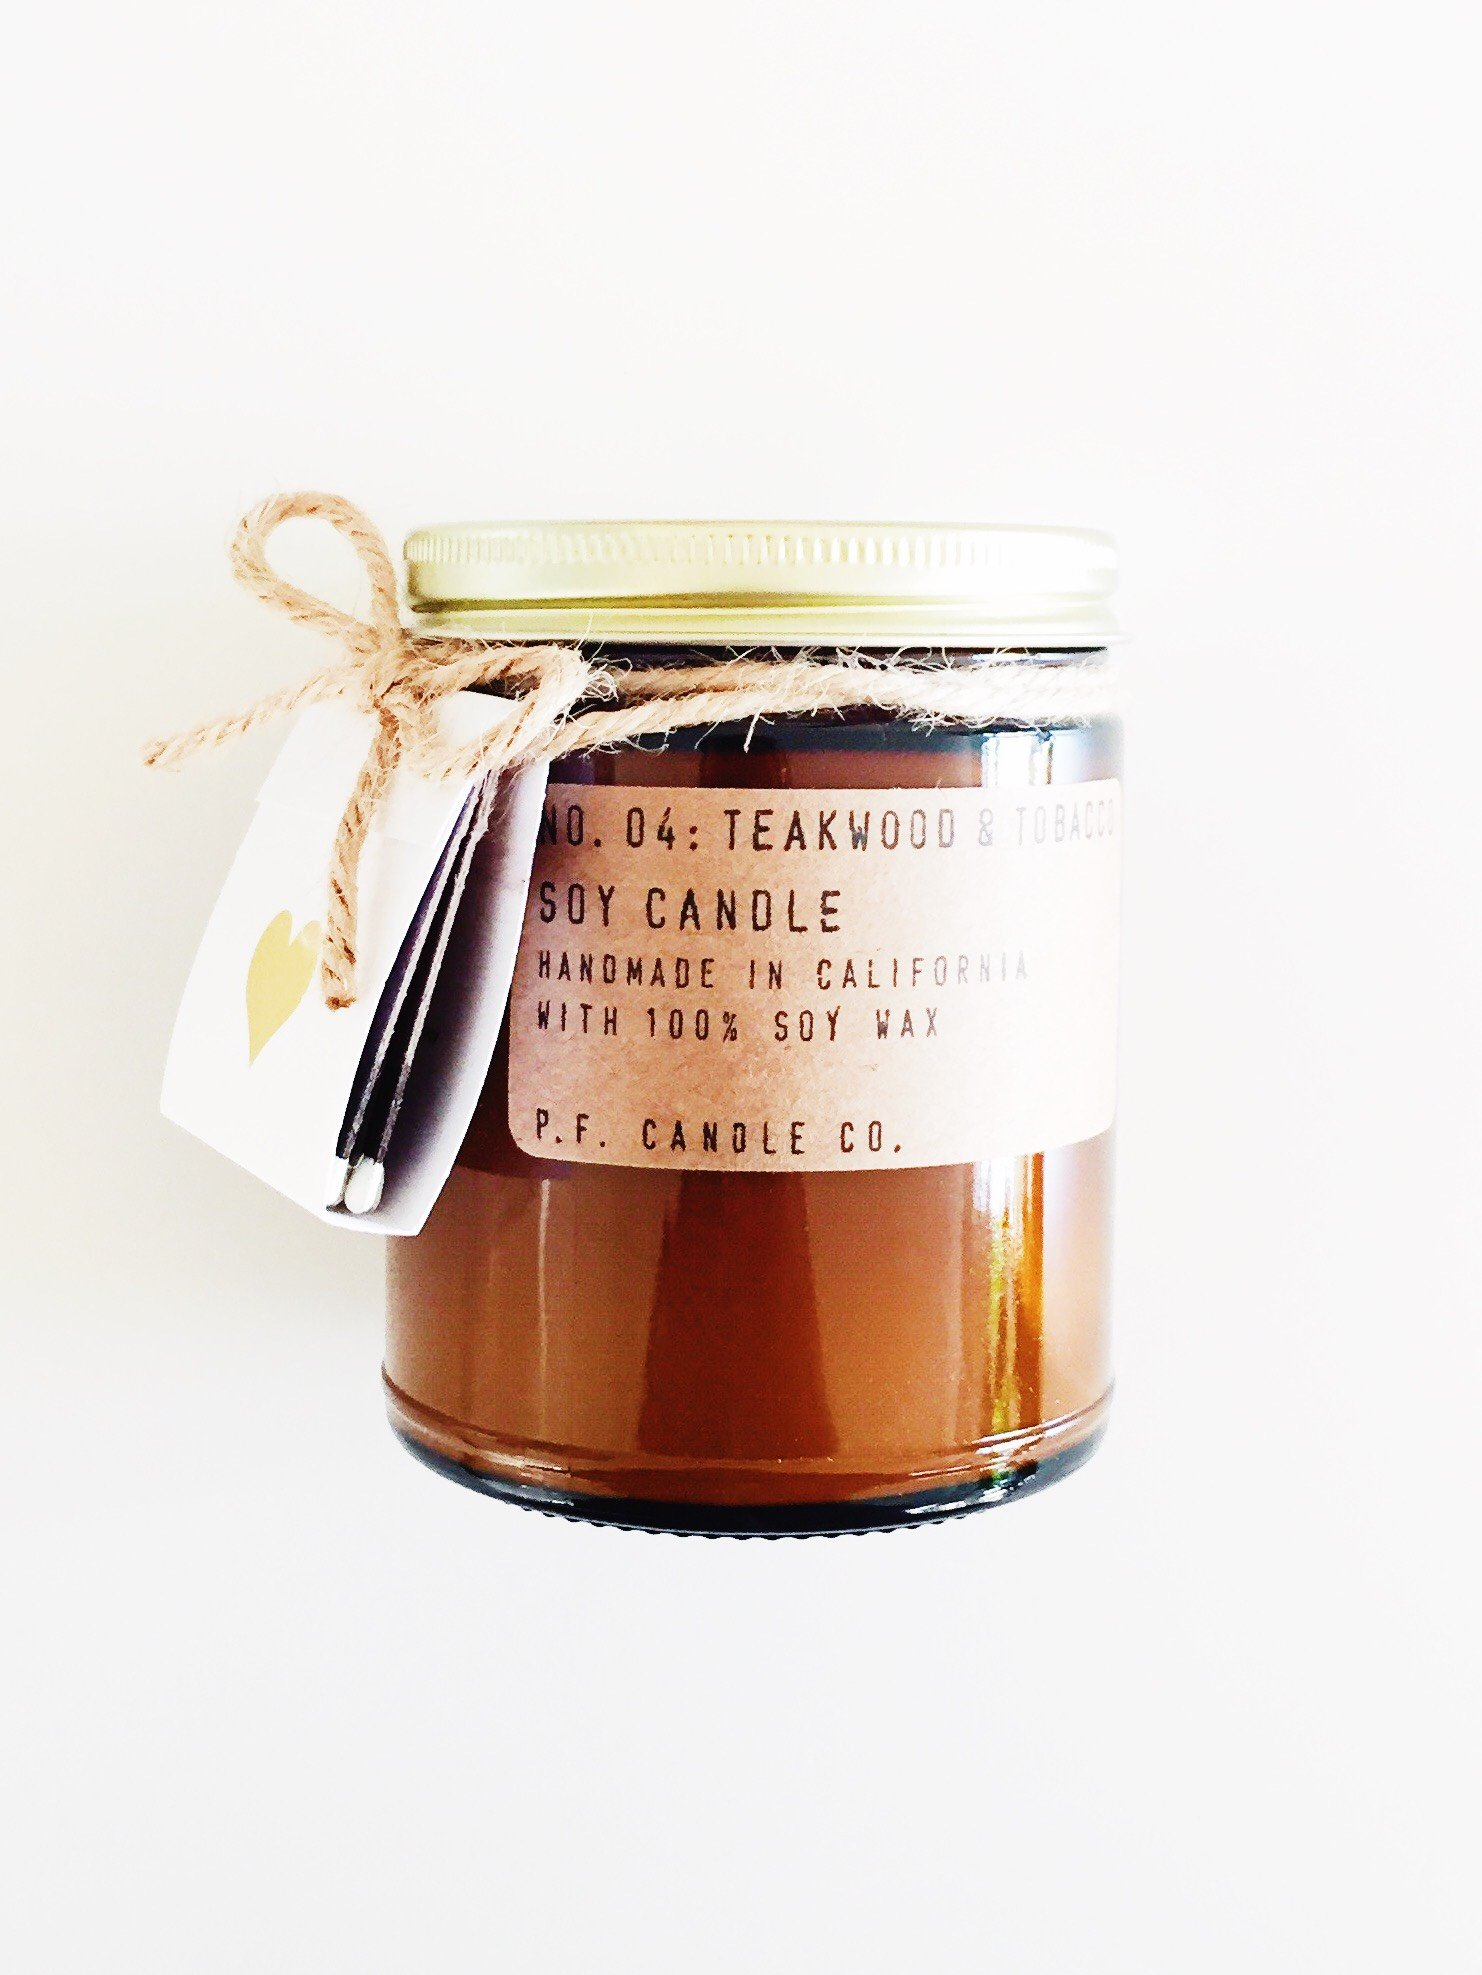 P.F. Candle Co. No. 04 Teakwood & Tobacco 7.2 oz. Scented Soy Candle and Matchbook